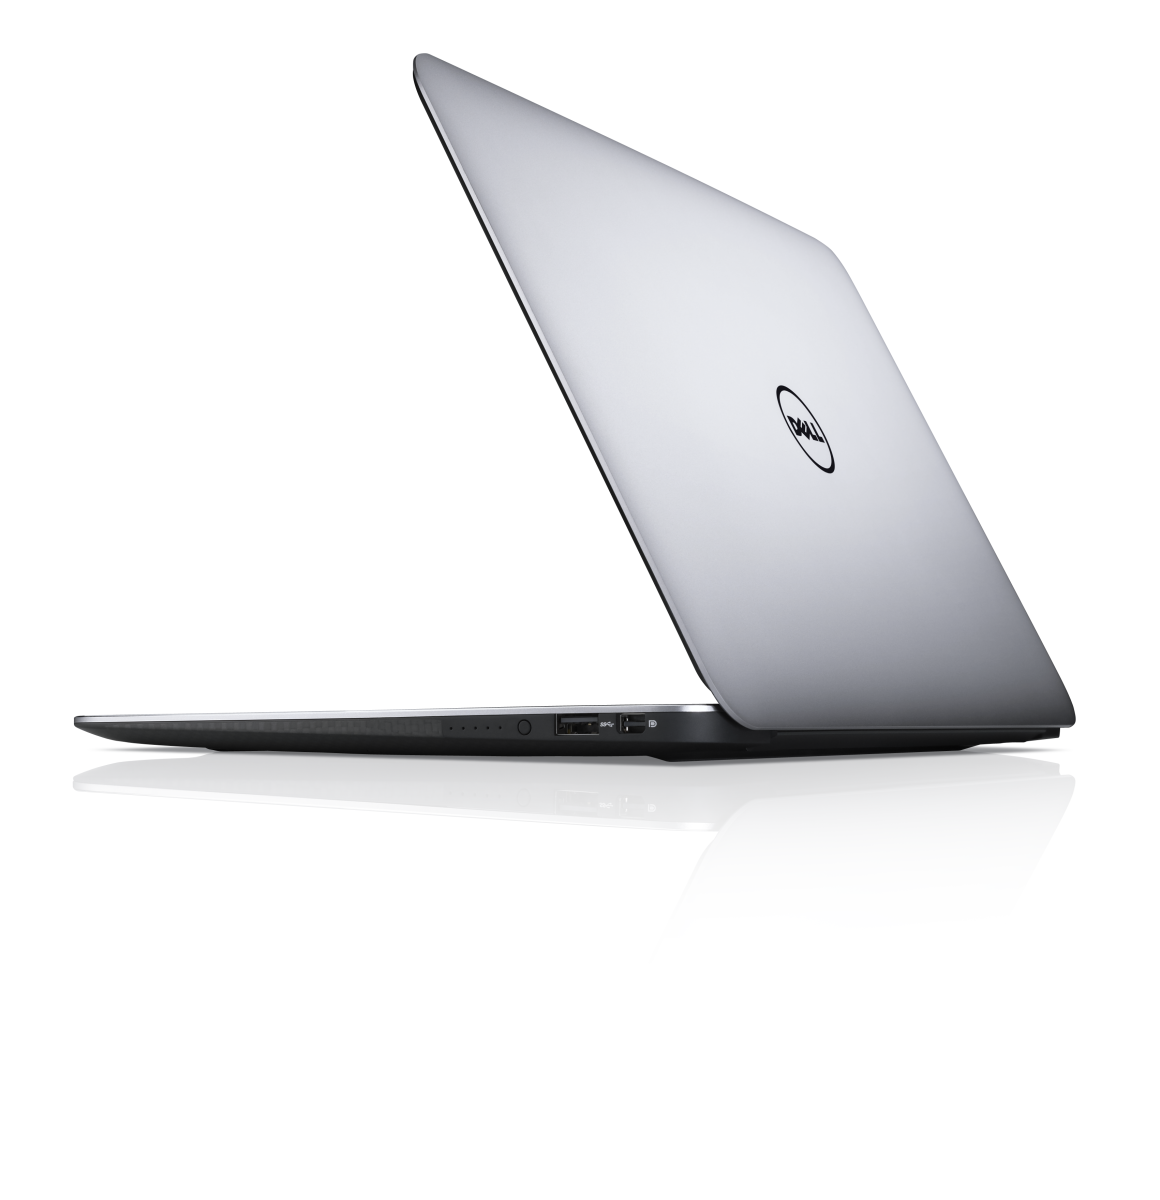 Dell Laptop Microphone Location likewise 19484217 in addition 19480998 likewise 450883 2010 Dell  puters as well HP EliteBook 2730p 12274 0. on dell xps desktop specs